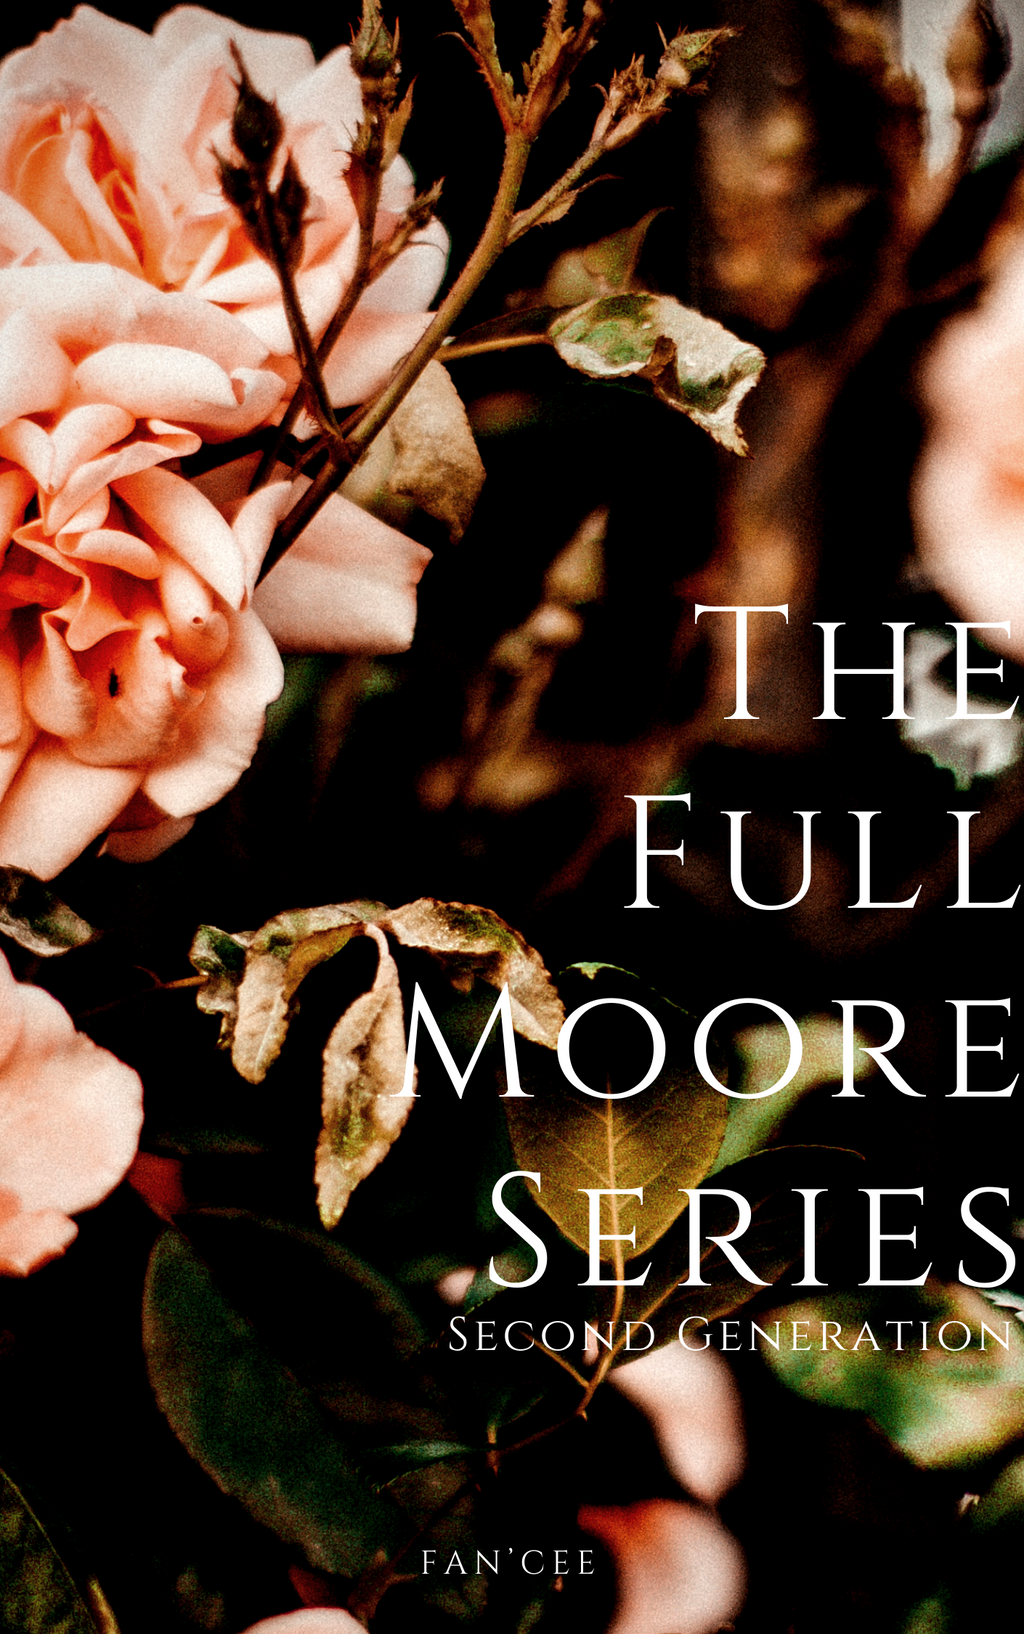 Full Second Generation Moore Series (Two Books Included)